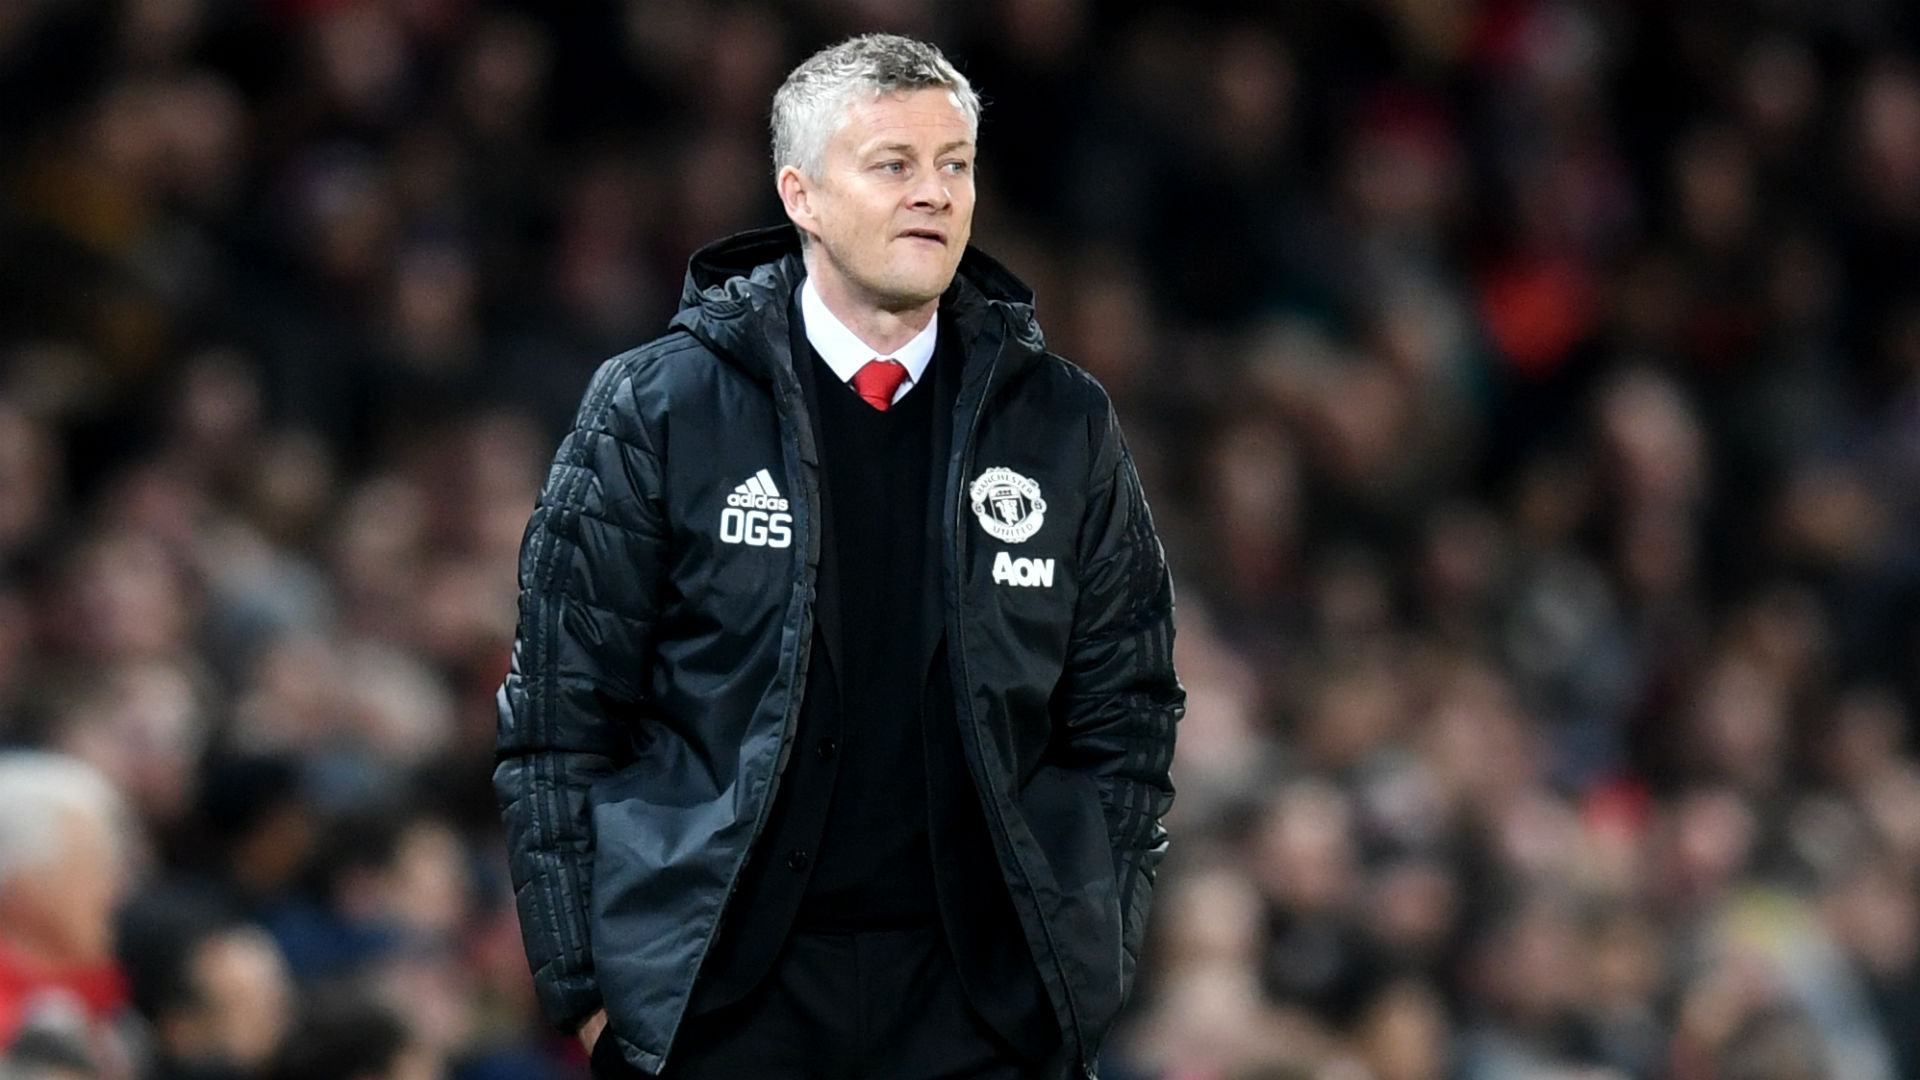 Ole Gunnar Solskjaer must address Man United's loss momentum